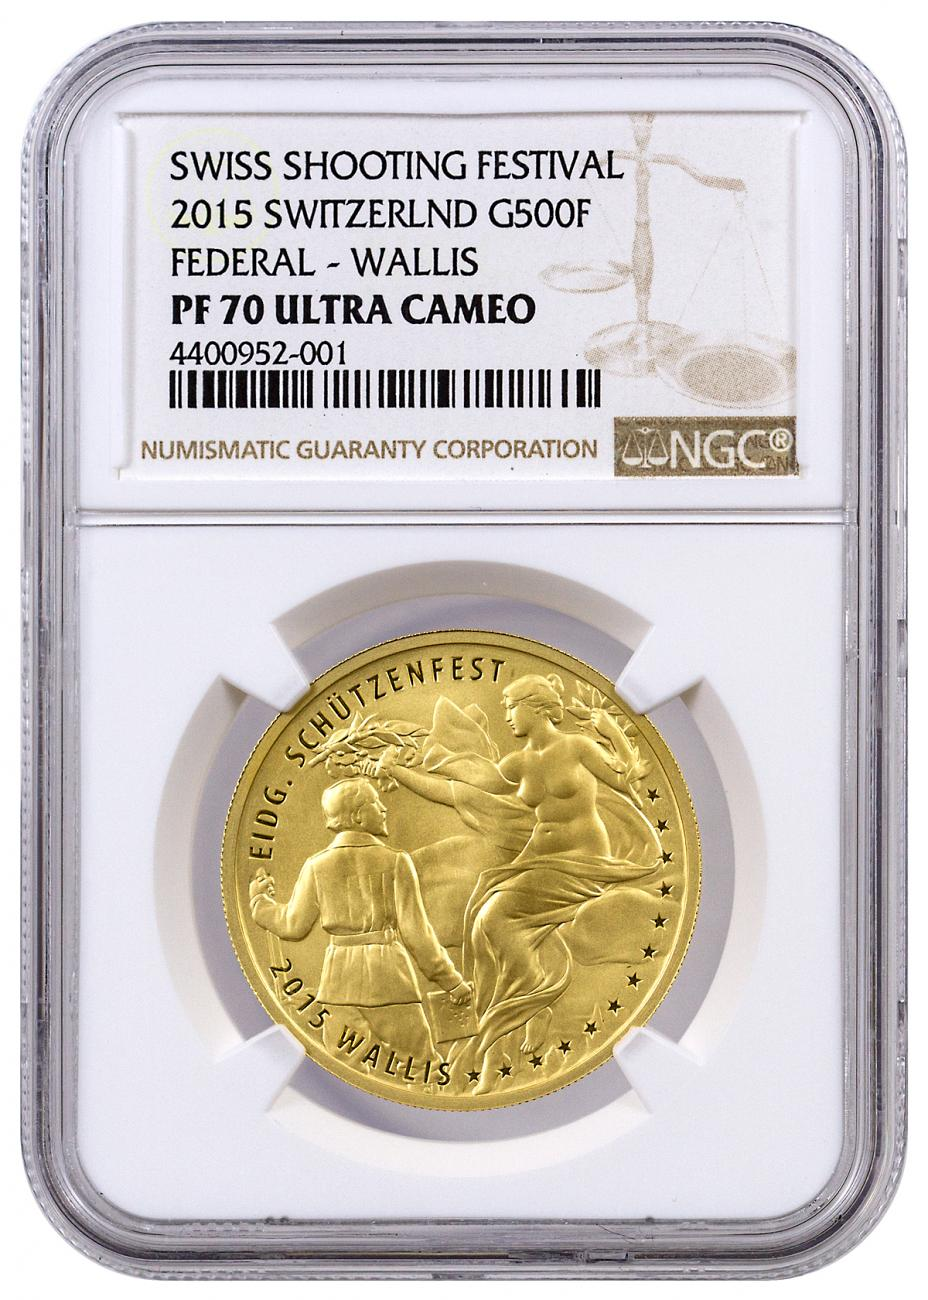 2015 Switzerland 500 Francs Proof Gold Shooting Festival Thaler  - Federal Wallis - NGC PF70 UC